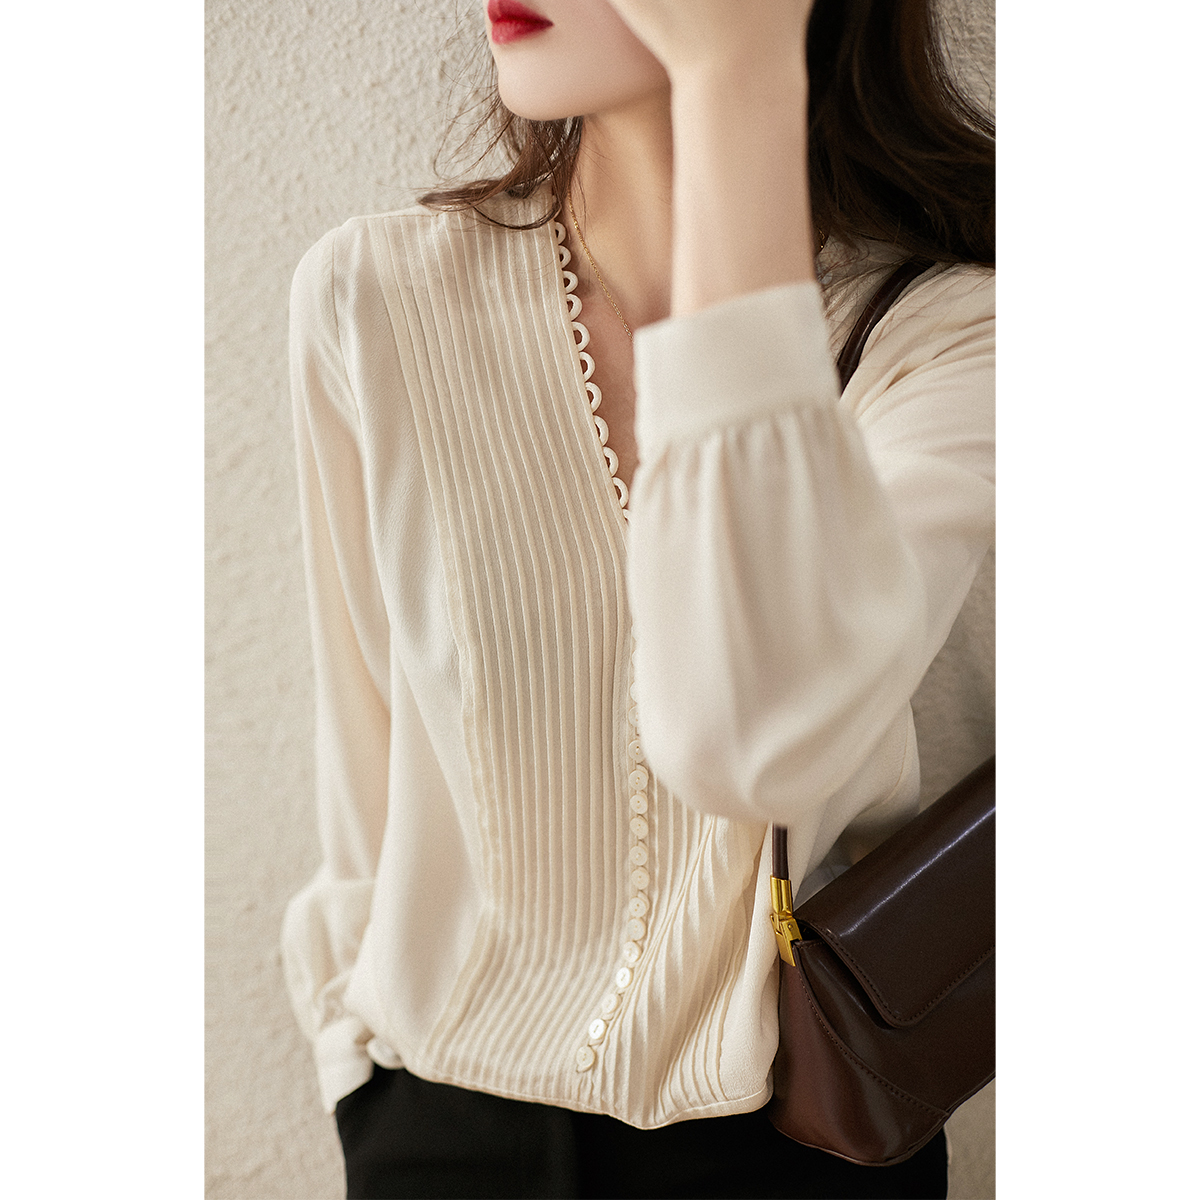 SYB380281AG) early spring new craft complex organ press fold ghost mulberry silk long-sleeved top girl